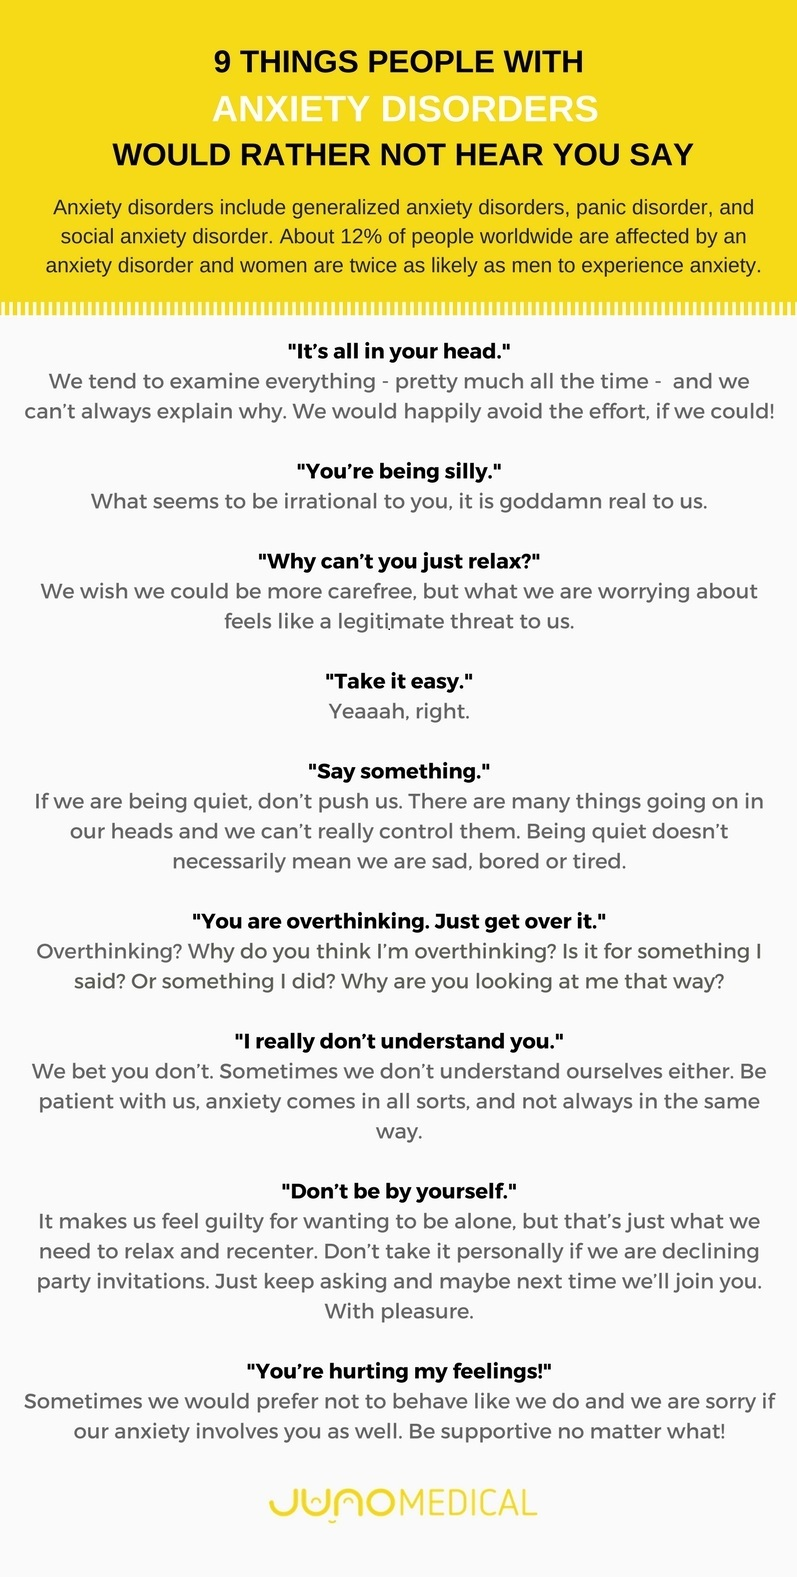 Things not to say infographic